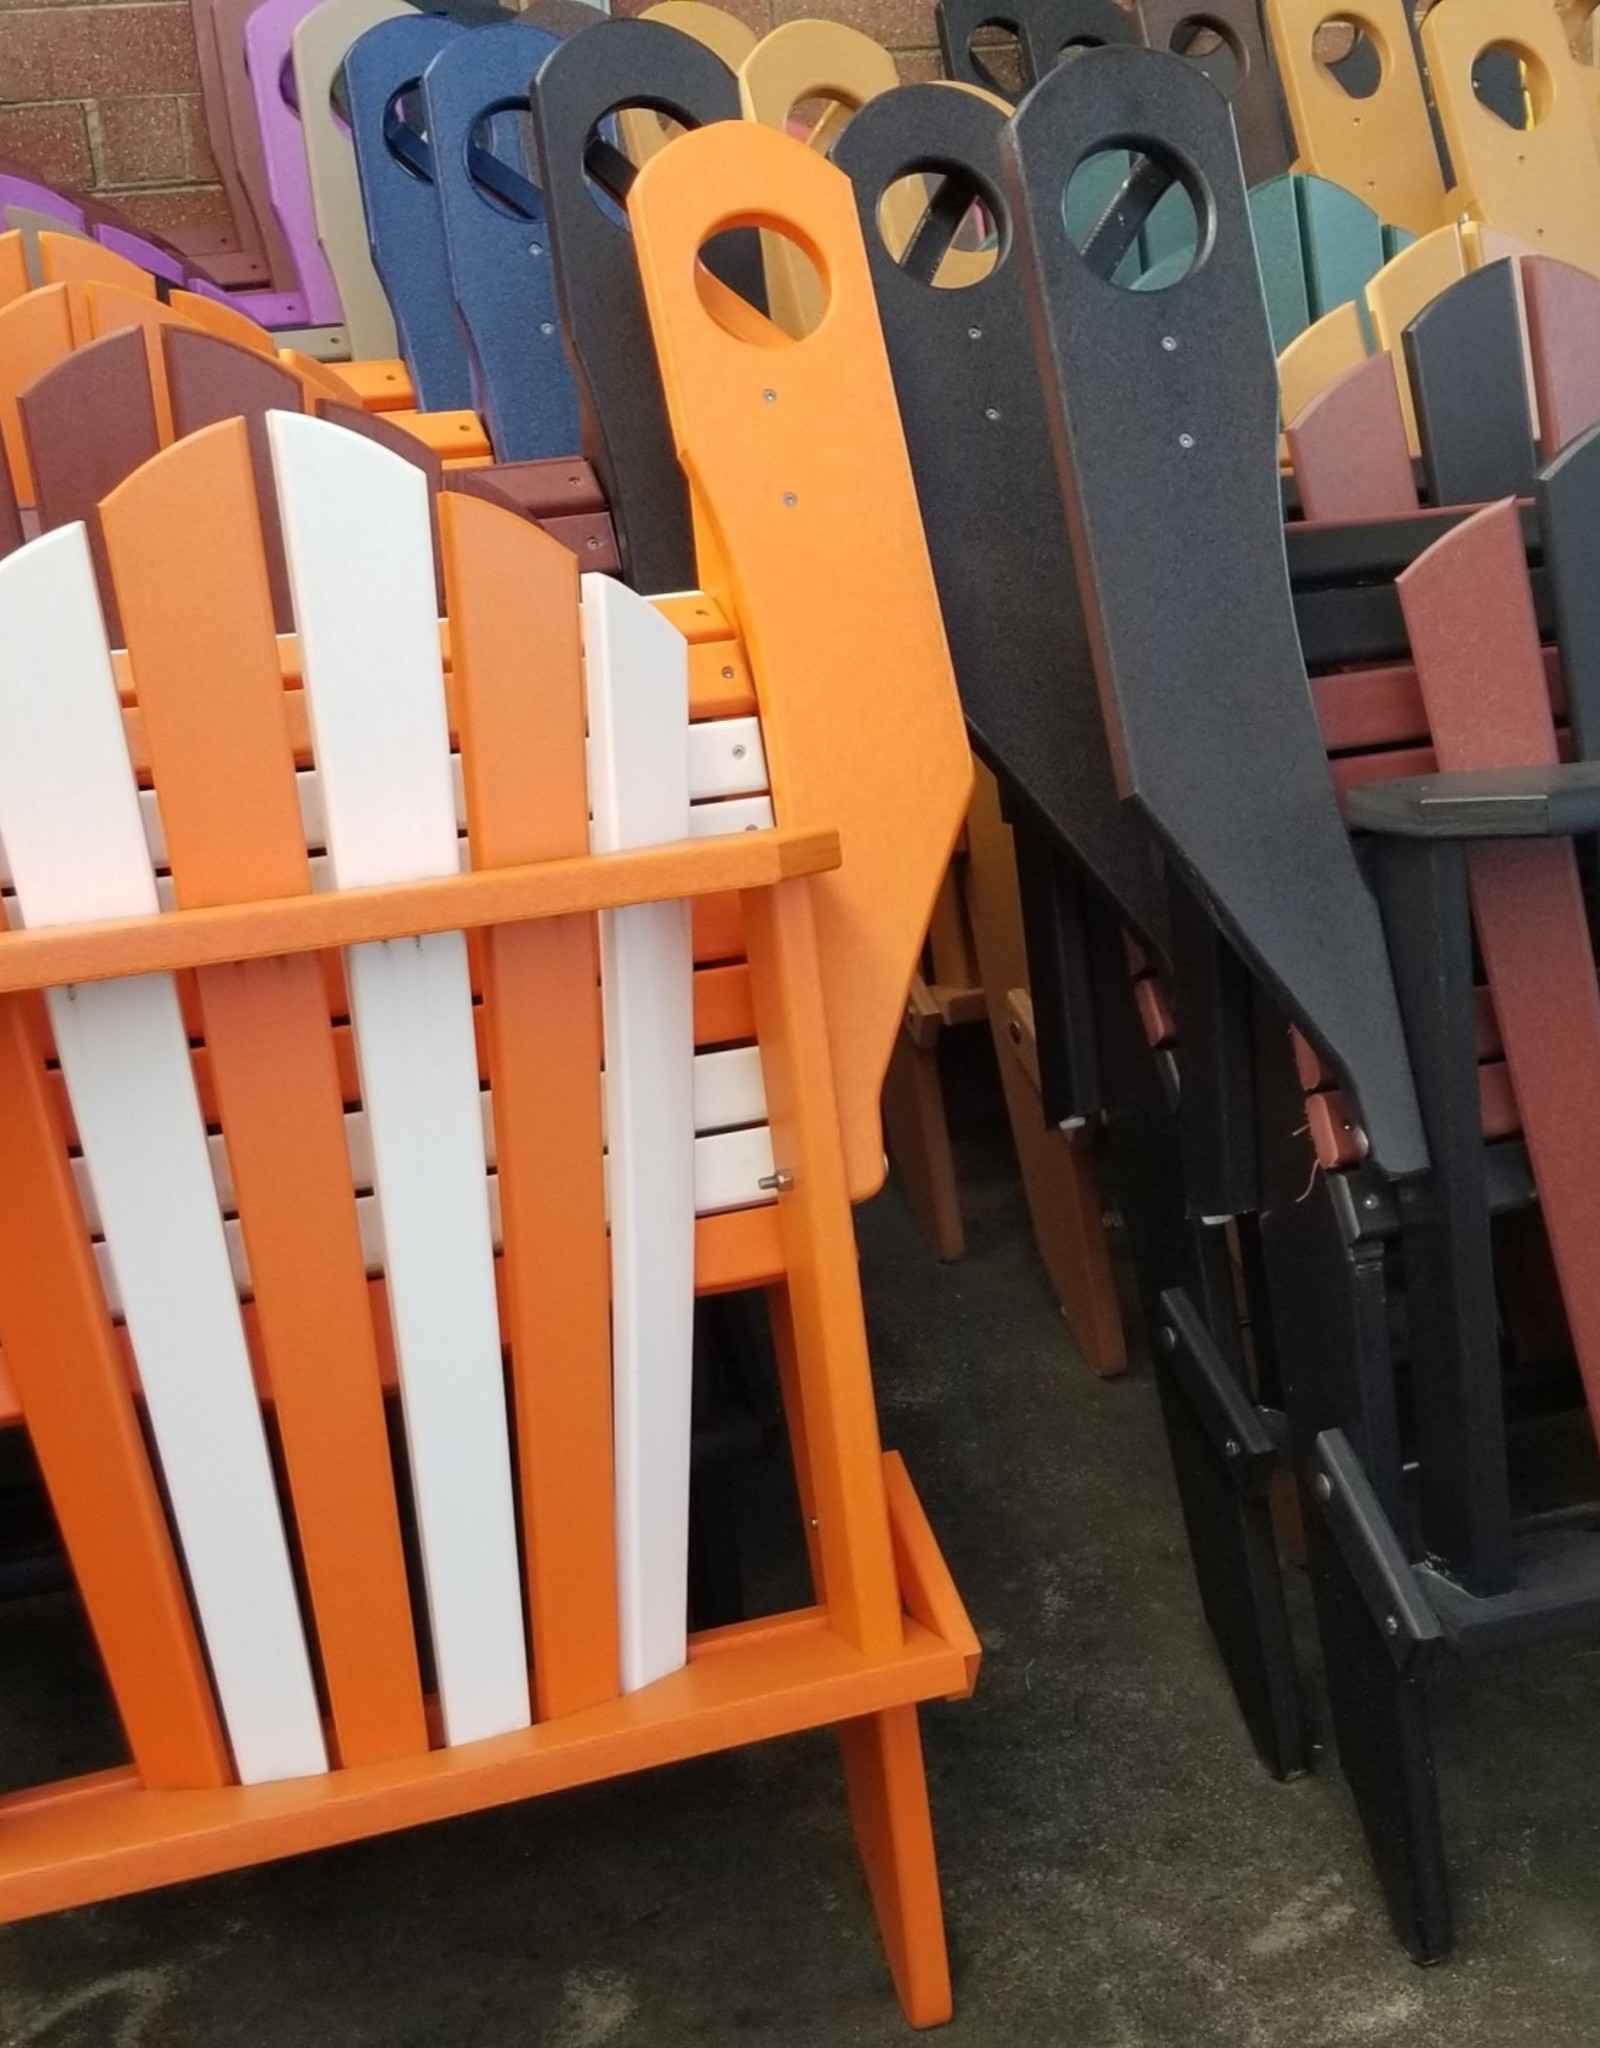 Home Decor Folding Adirondack chair w/ Built-in Cupholders- 19 colors available!